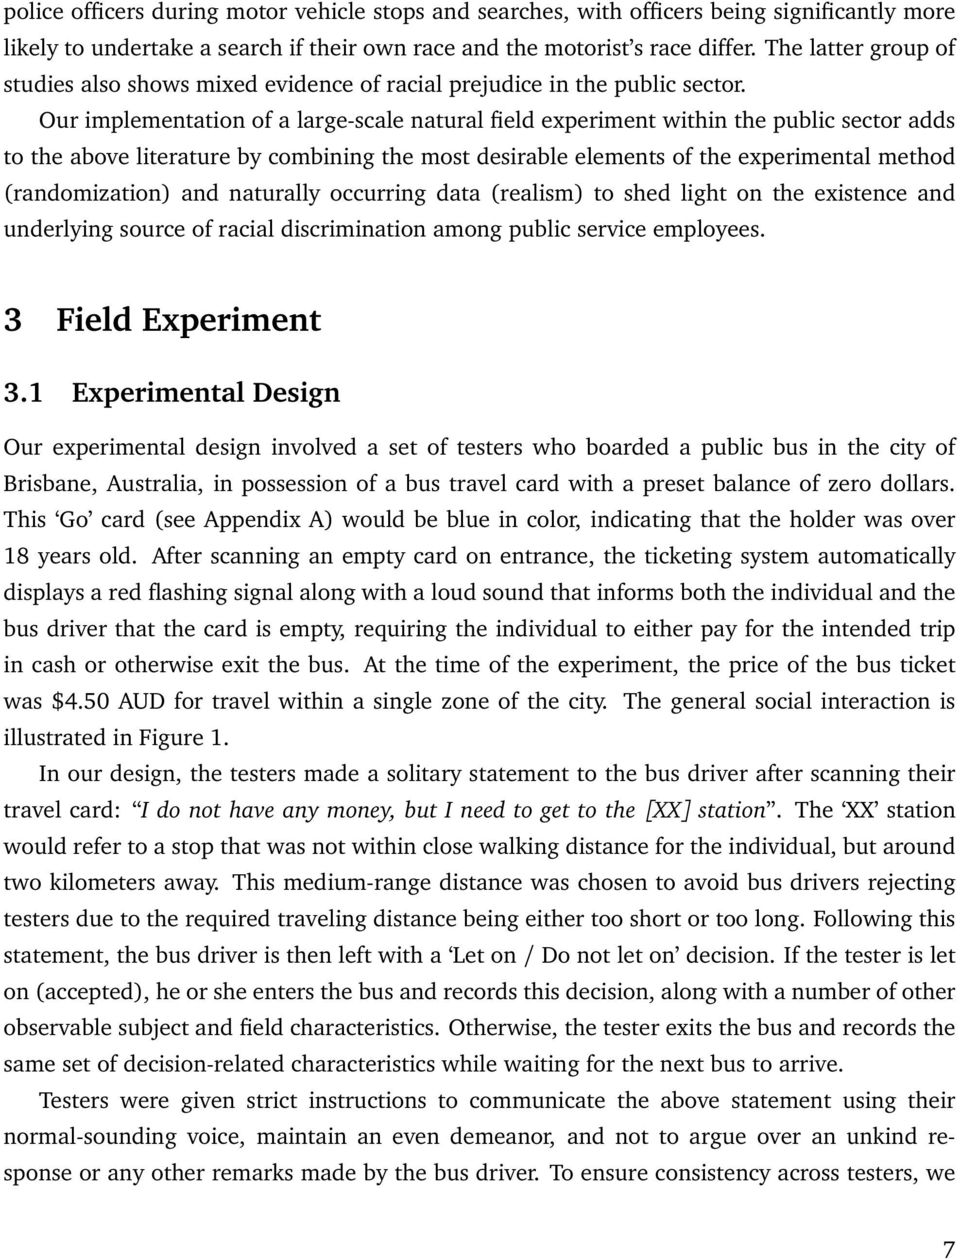 Our implementation of a large-scale natural field experiment within the public sector adds to the above literature by combining the most desirable elements of the experimental method (randomization)